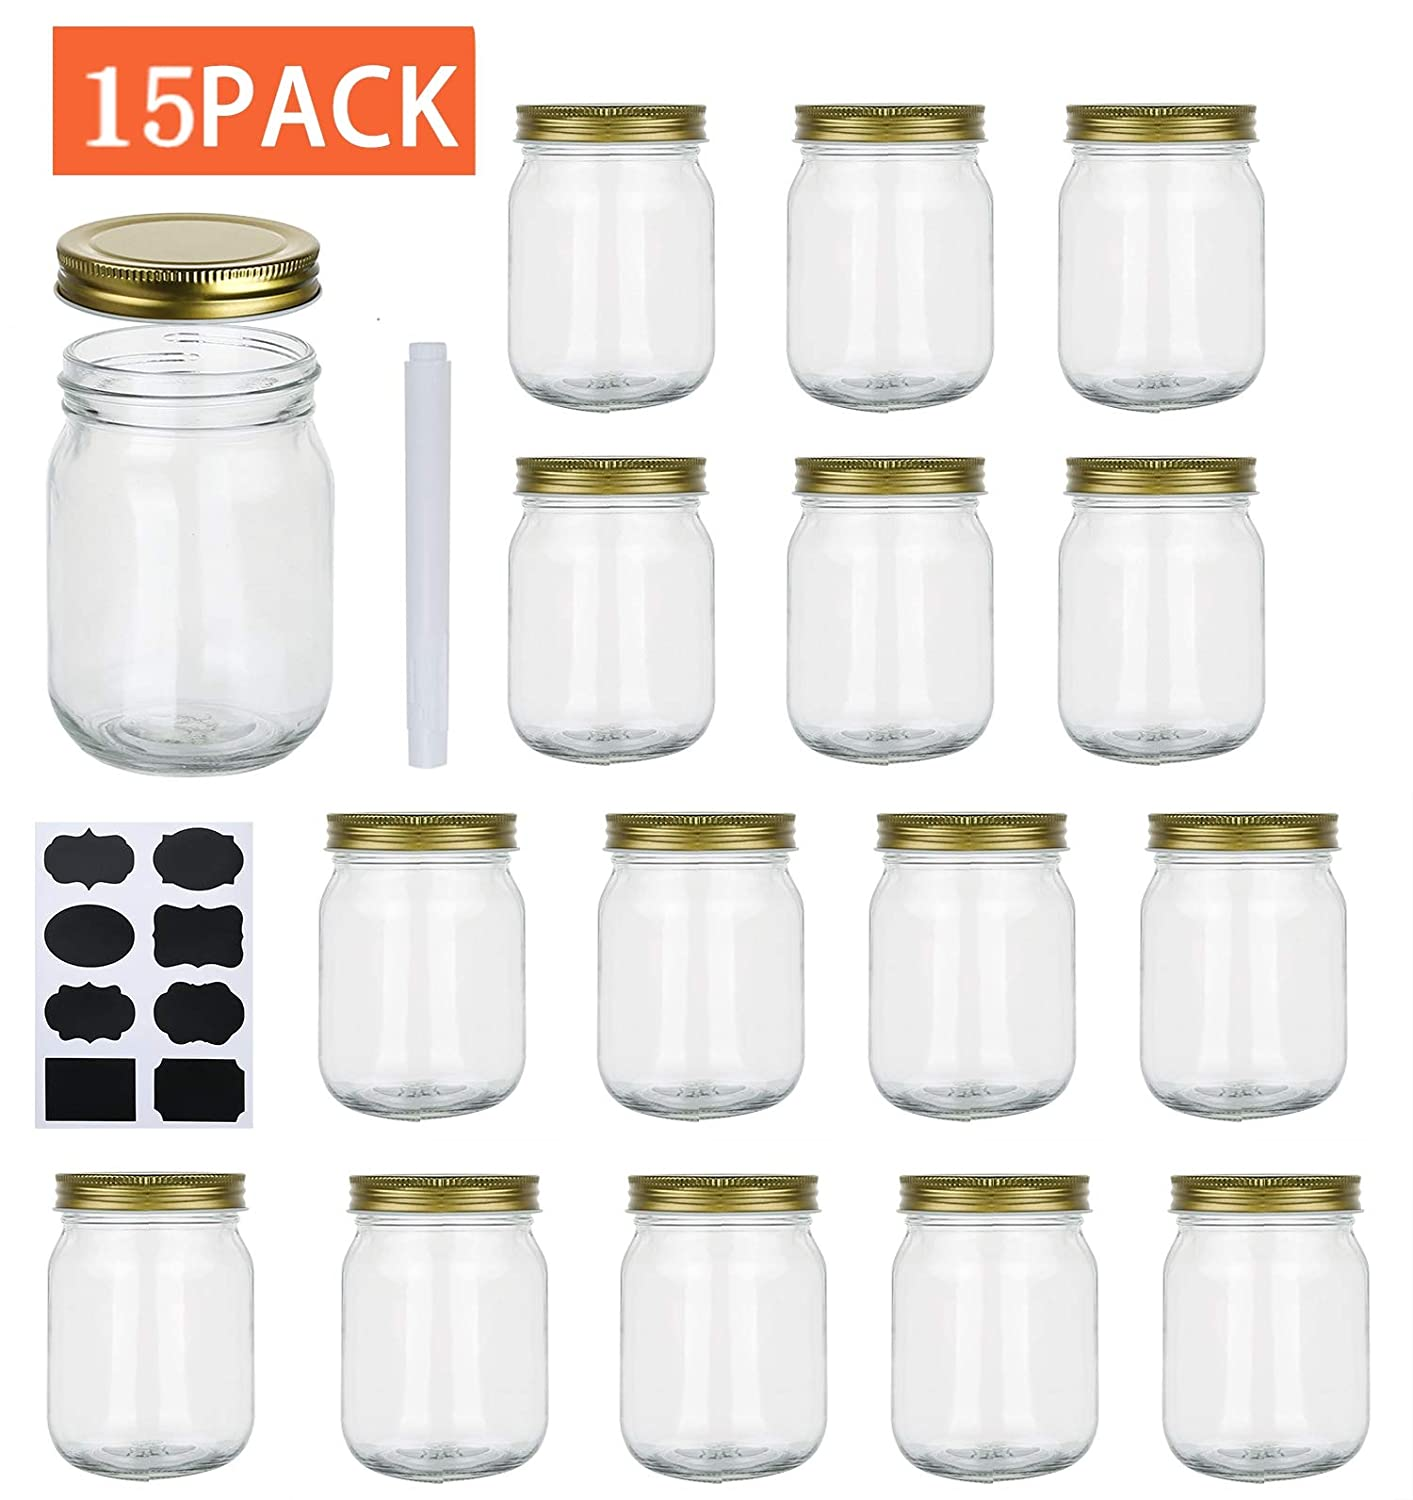 6d2bb1cb2540 Encheng 16 oz Glass Jars With Lids,Regular Mouth Ball Mason Jars For  Storage,Canning Jars For PIckles,Herb,Jelly,Jams,Honey,Dishware Safe,Set Of  15